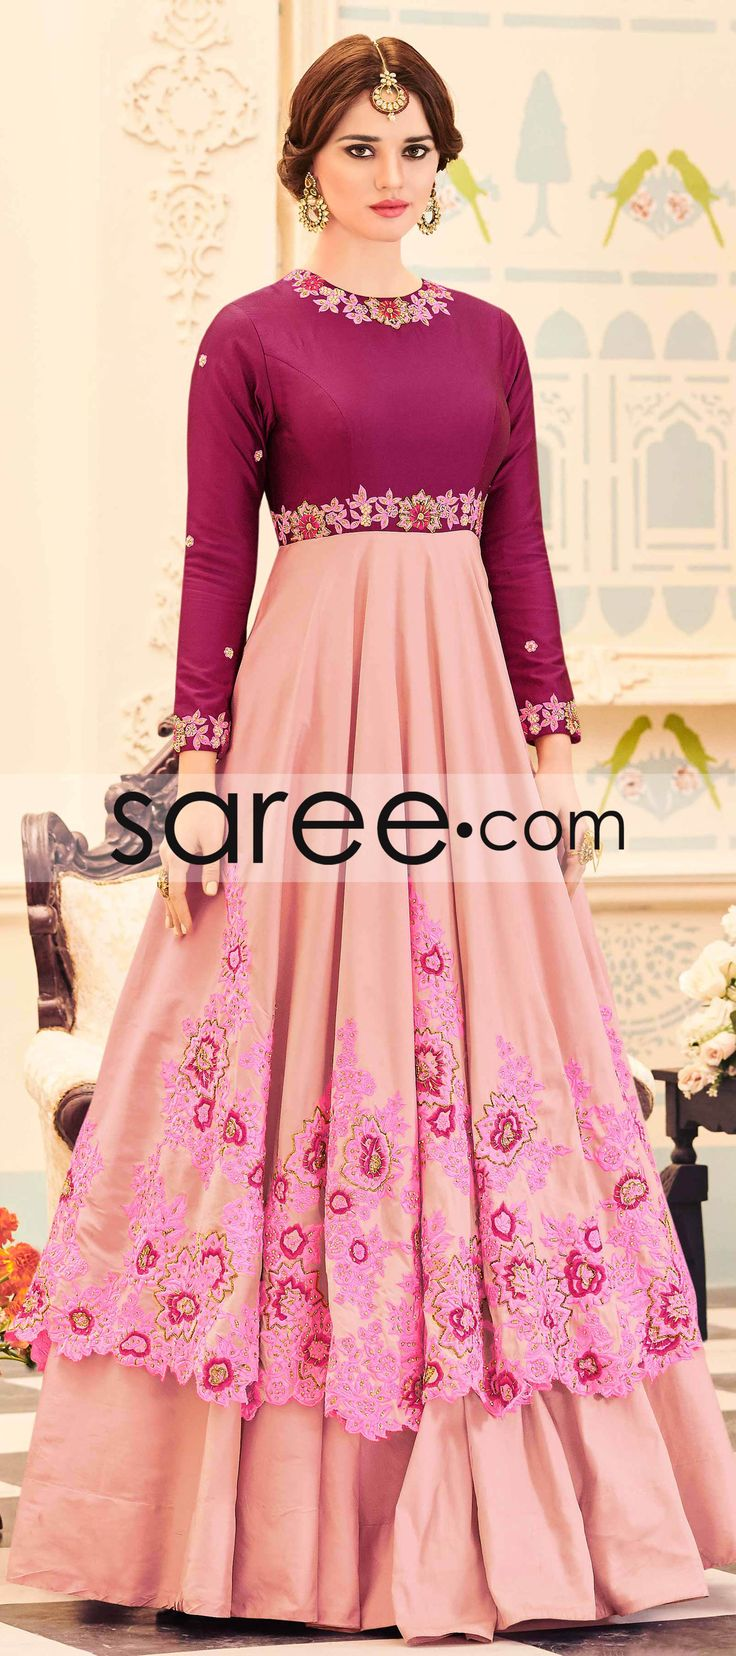 MAGENTA AND PINK GEORGETTE ANARKALI SUIT WITH EMBROIDERY WORK  #SalwarSuit #SalwarKameez #AnarkaliSuits #StraightCutSuits #CollegeWearSalwarSuits #buyonline #OnlineSalwarSuits #PartywearSalwarSuits #SalwarSuits #Indowestern